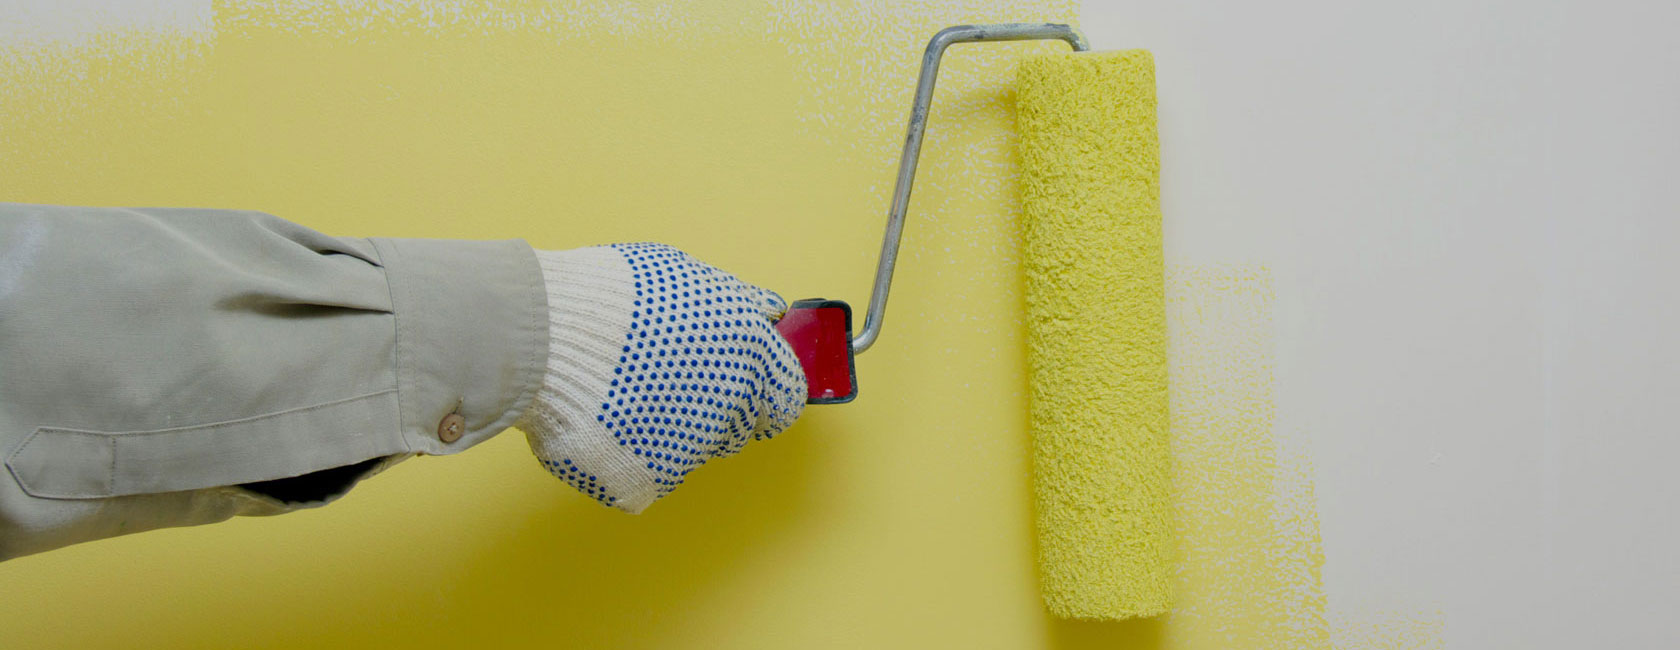 residential painters sydney